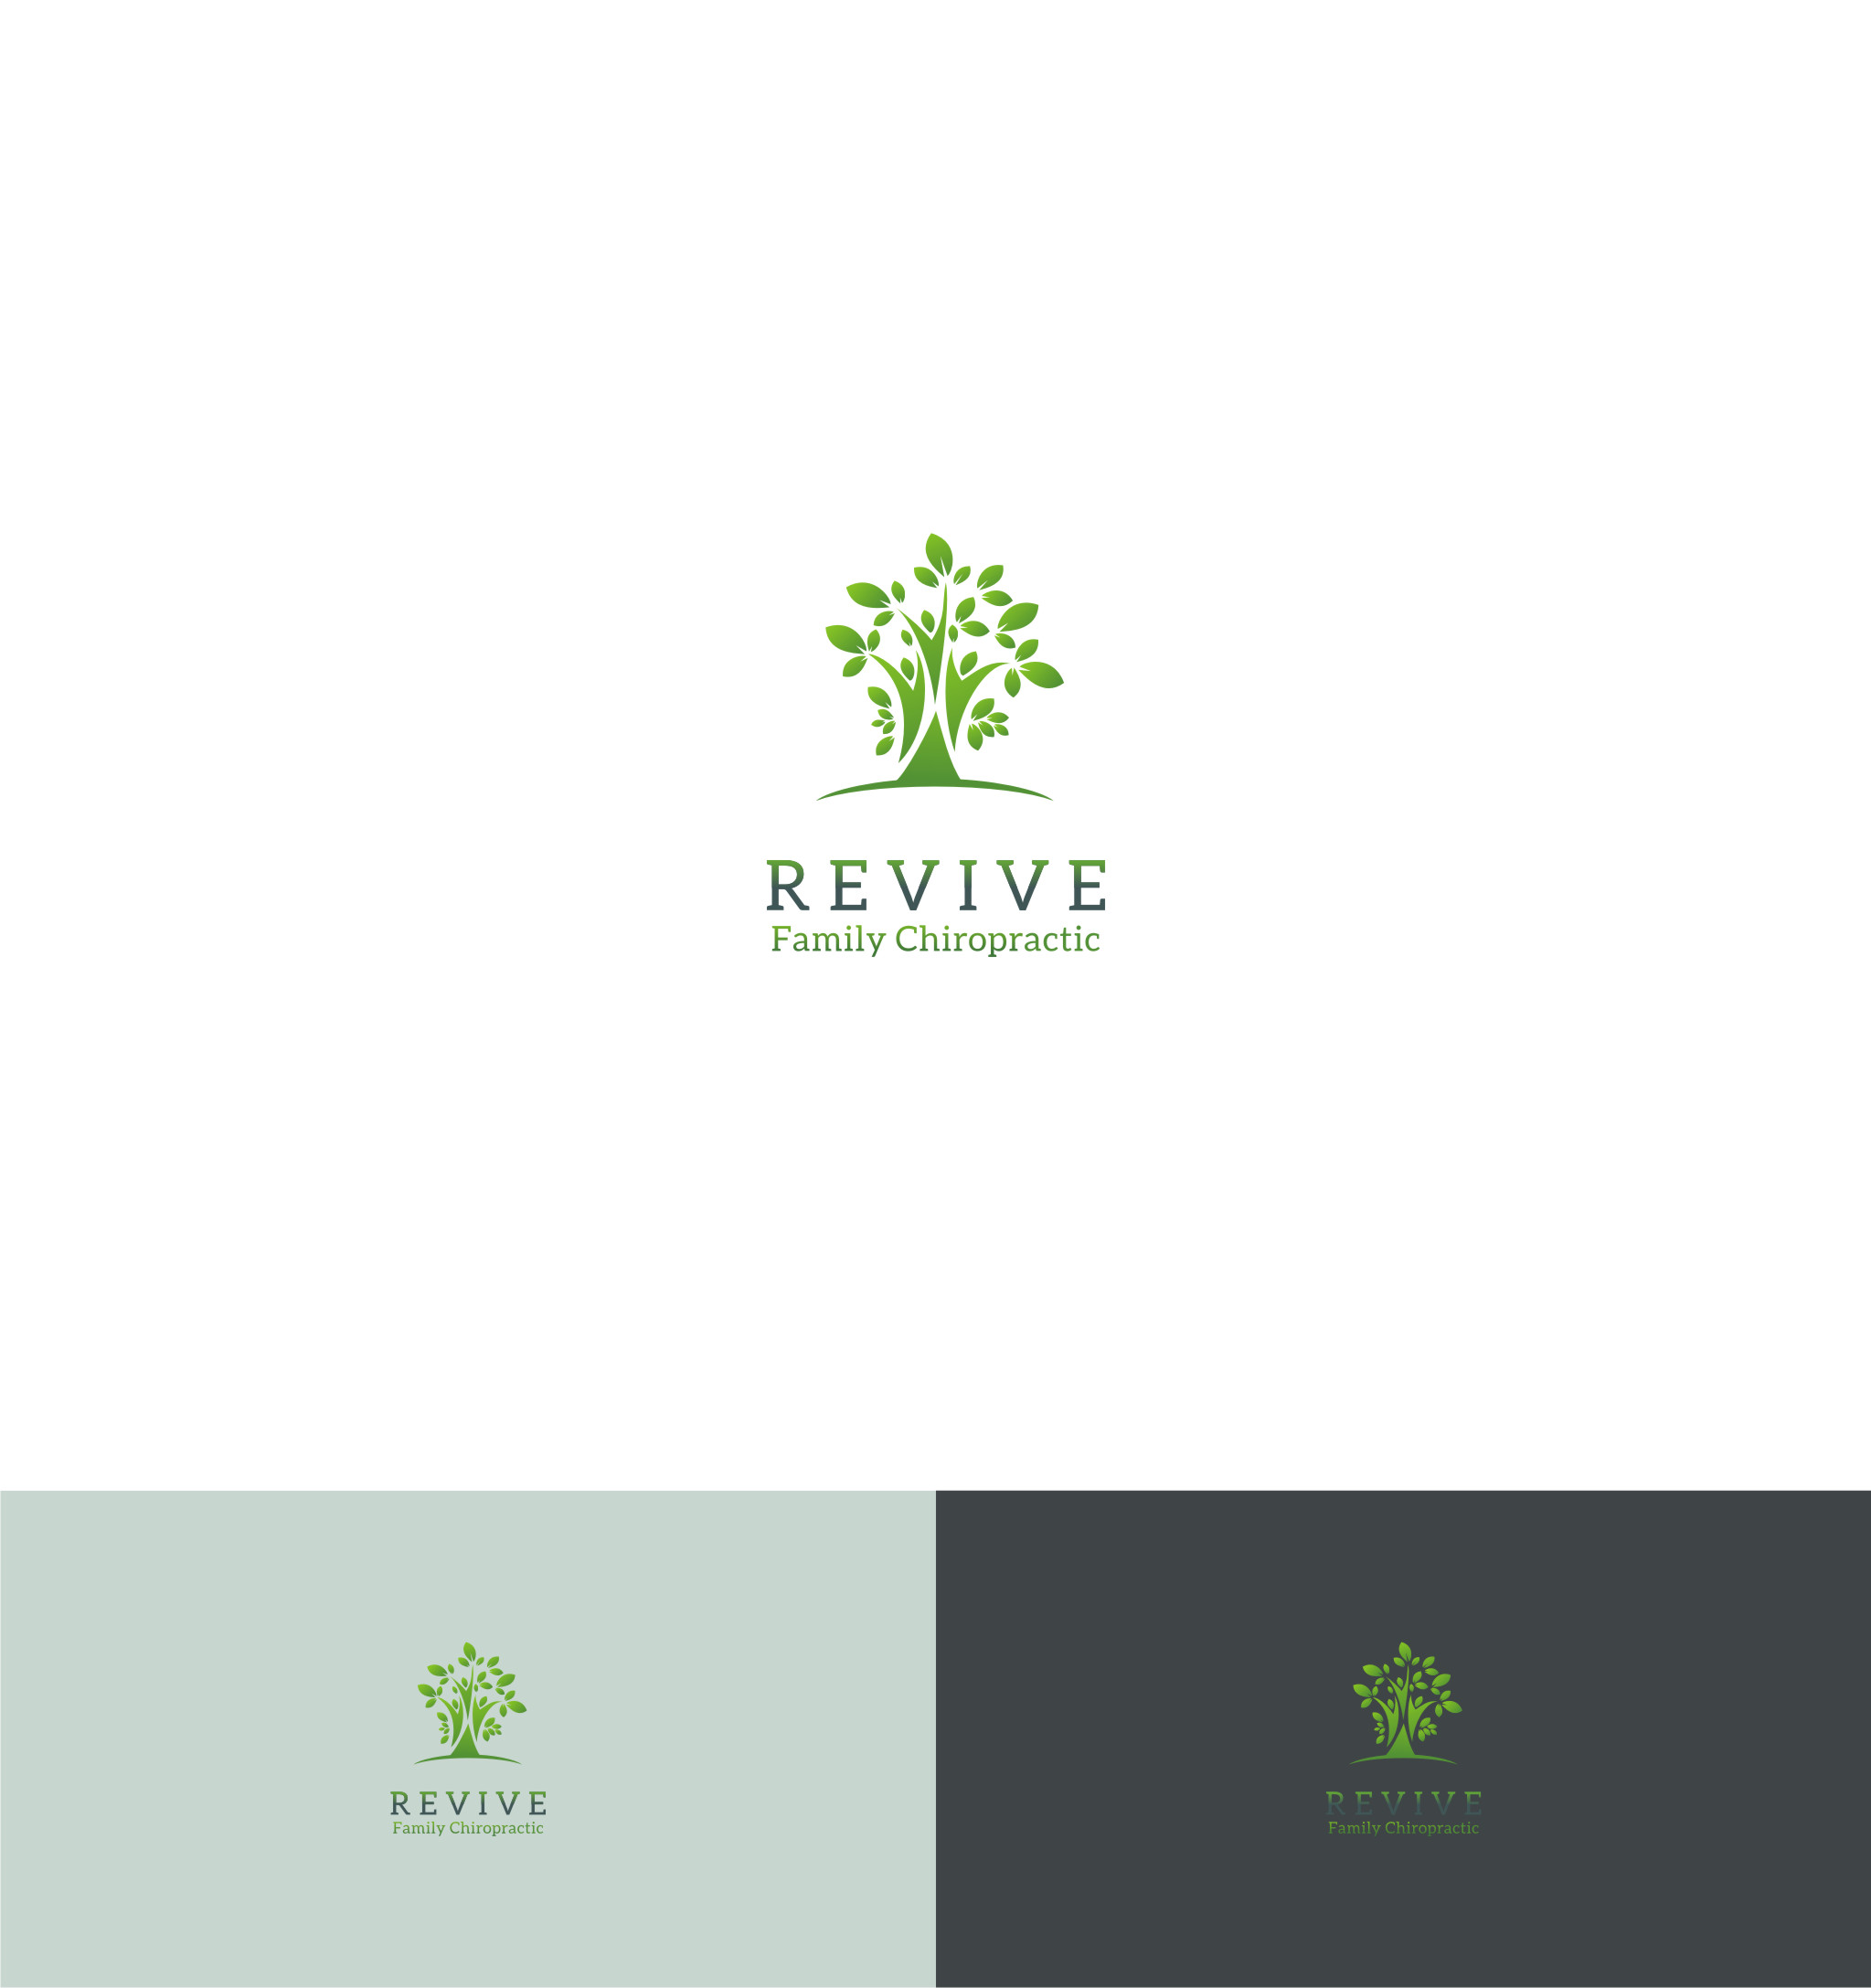 Logo Design by Qwerty78 - Entry No. 49 in the Logo Design Contest Fun Logo Design for Revive Family Chiropractic.